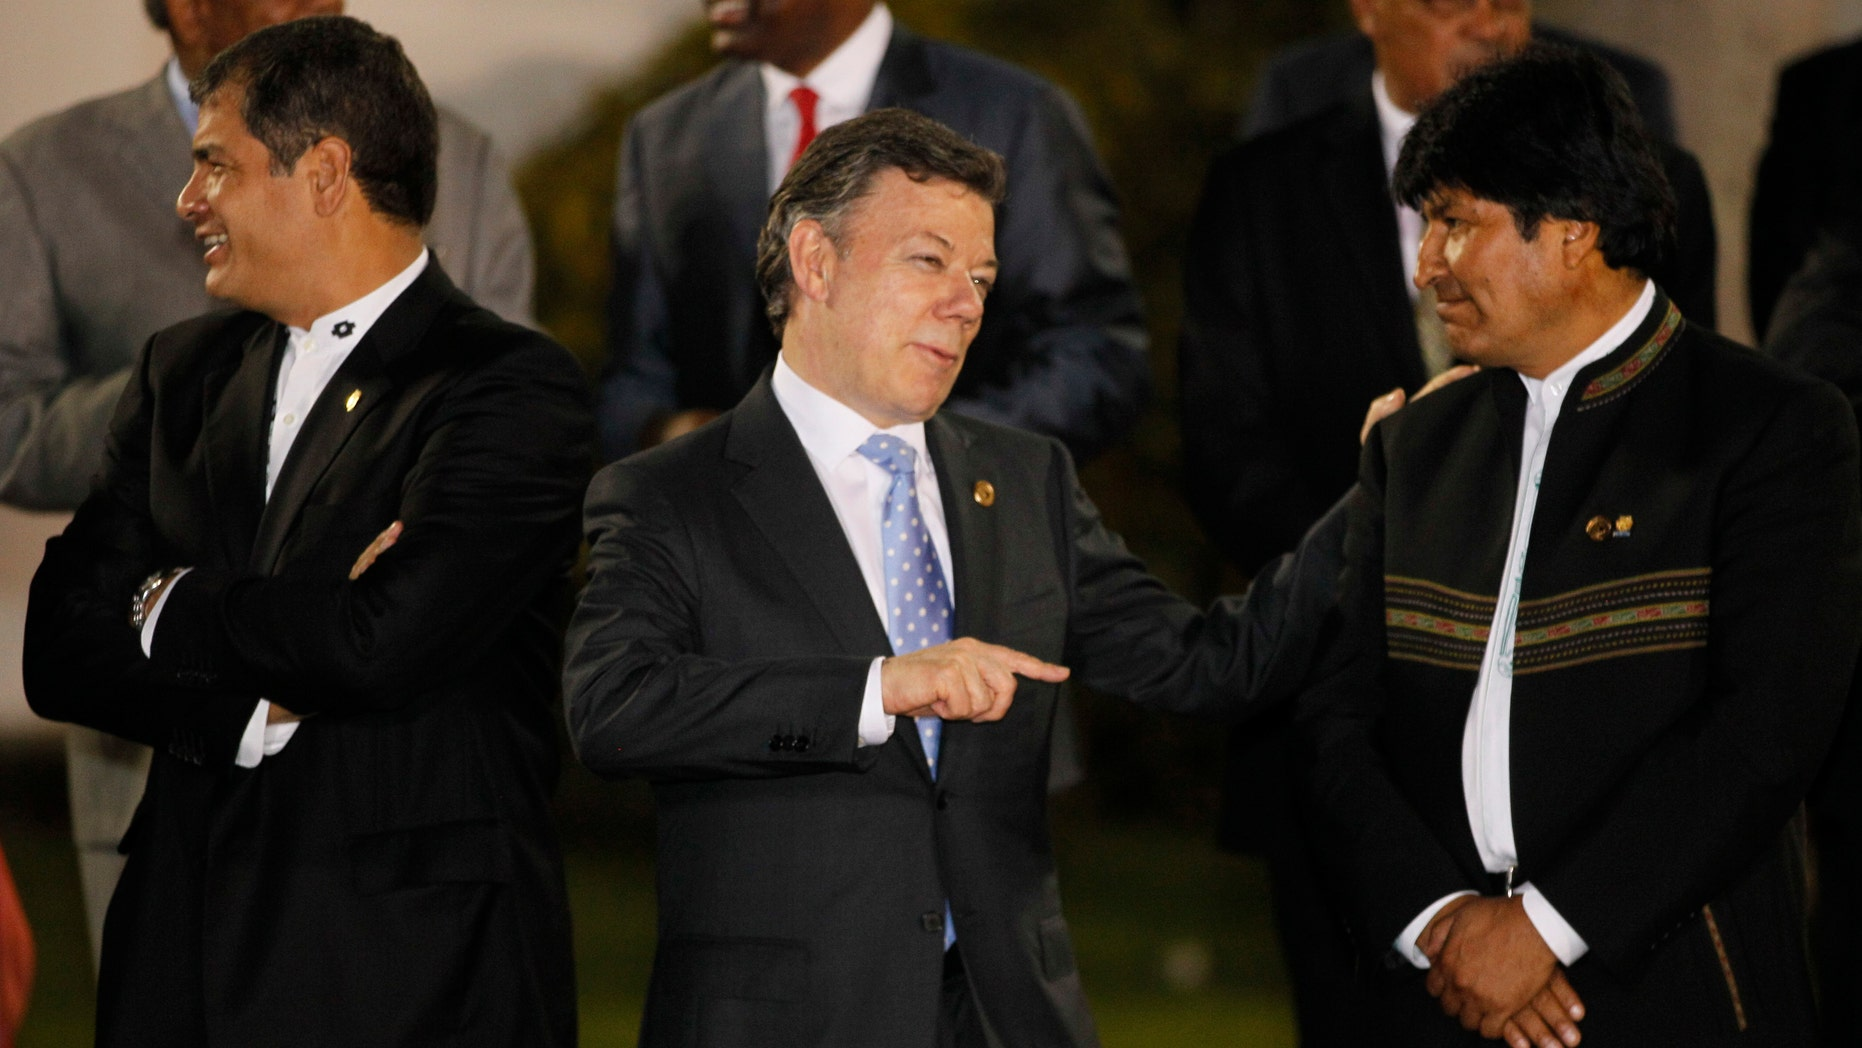 Colombia's President Juan Manuel Santos, center, talks to Bolivia's President Evo Morales as Ecuador's President Rafael Correa, left, looks on during the group photo of the Community of Latin American and Caribbean States, CELAC, summit in Caracas, Venezuela, Friday, Dec. 2, 2011. CELAC members are gathering in a two-day, 33-nation summit welcoming countries from Brazil to Jamaica, adding one more bloc to a region with other smaller organizations like Unasur, Mercosur and the Caribbean Community. (AP Photo/Ricardo Mazalan)